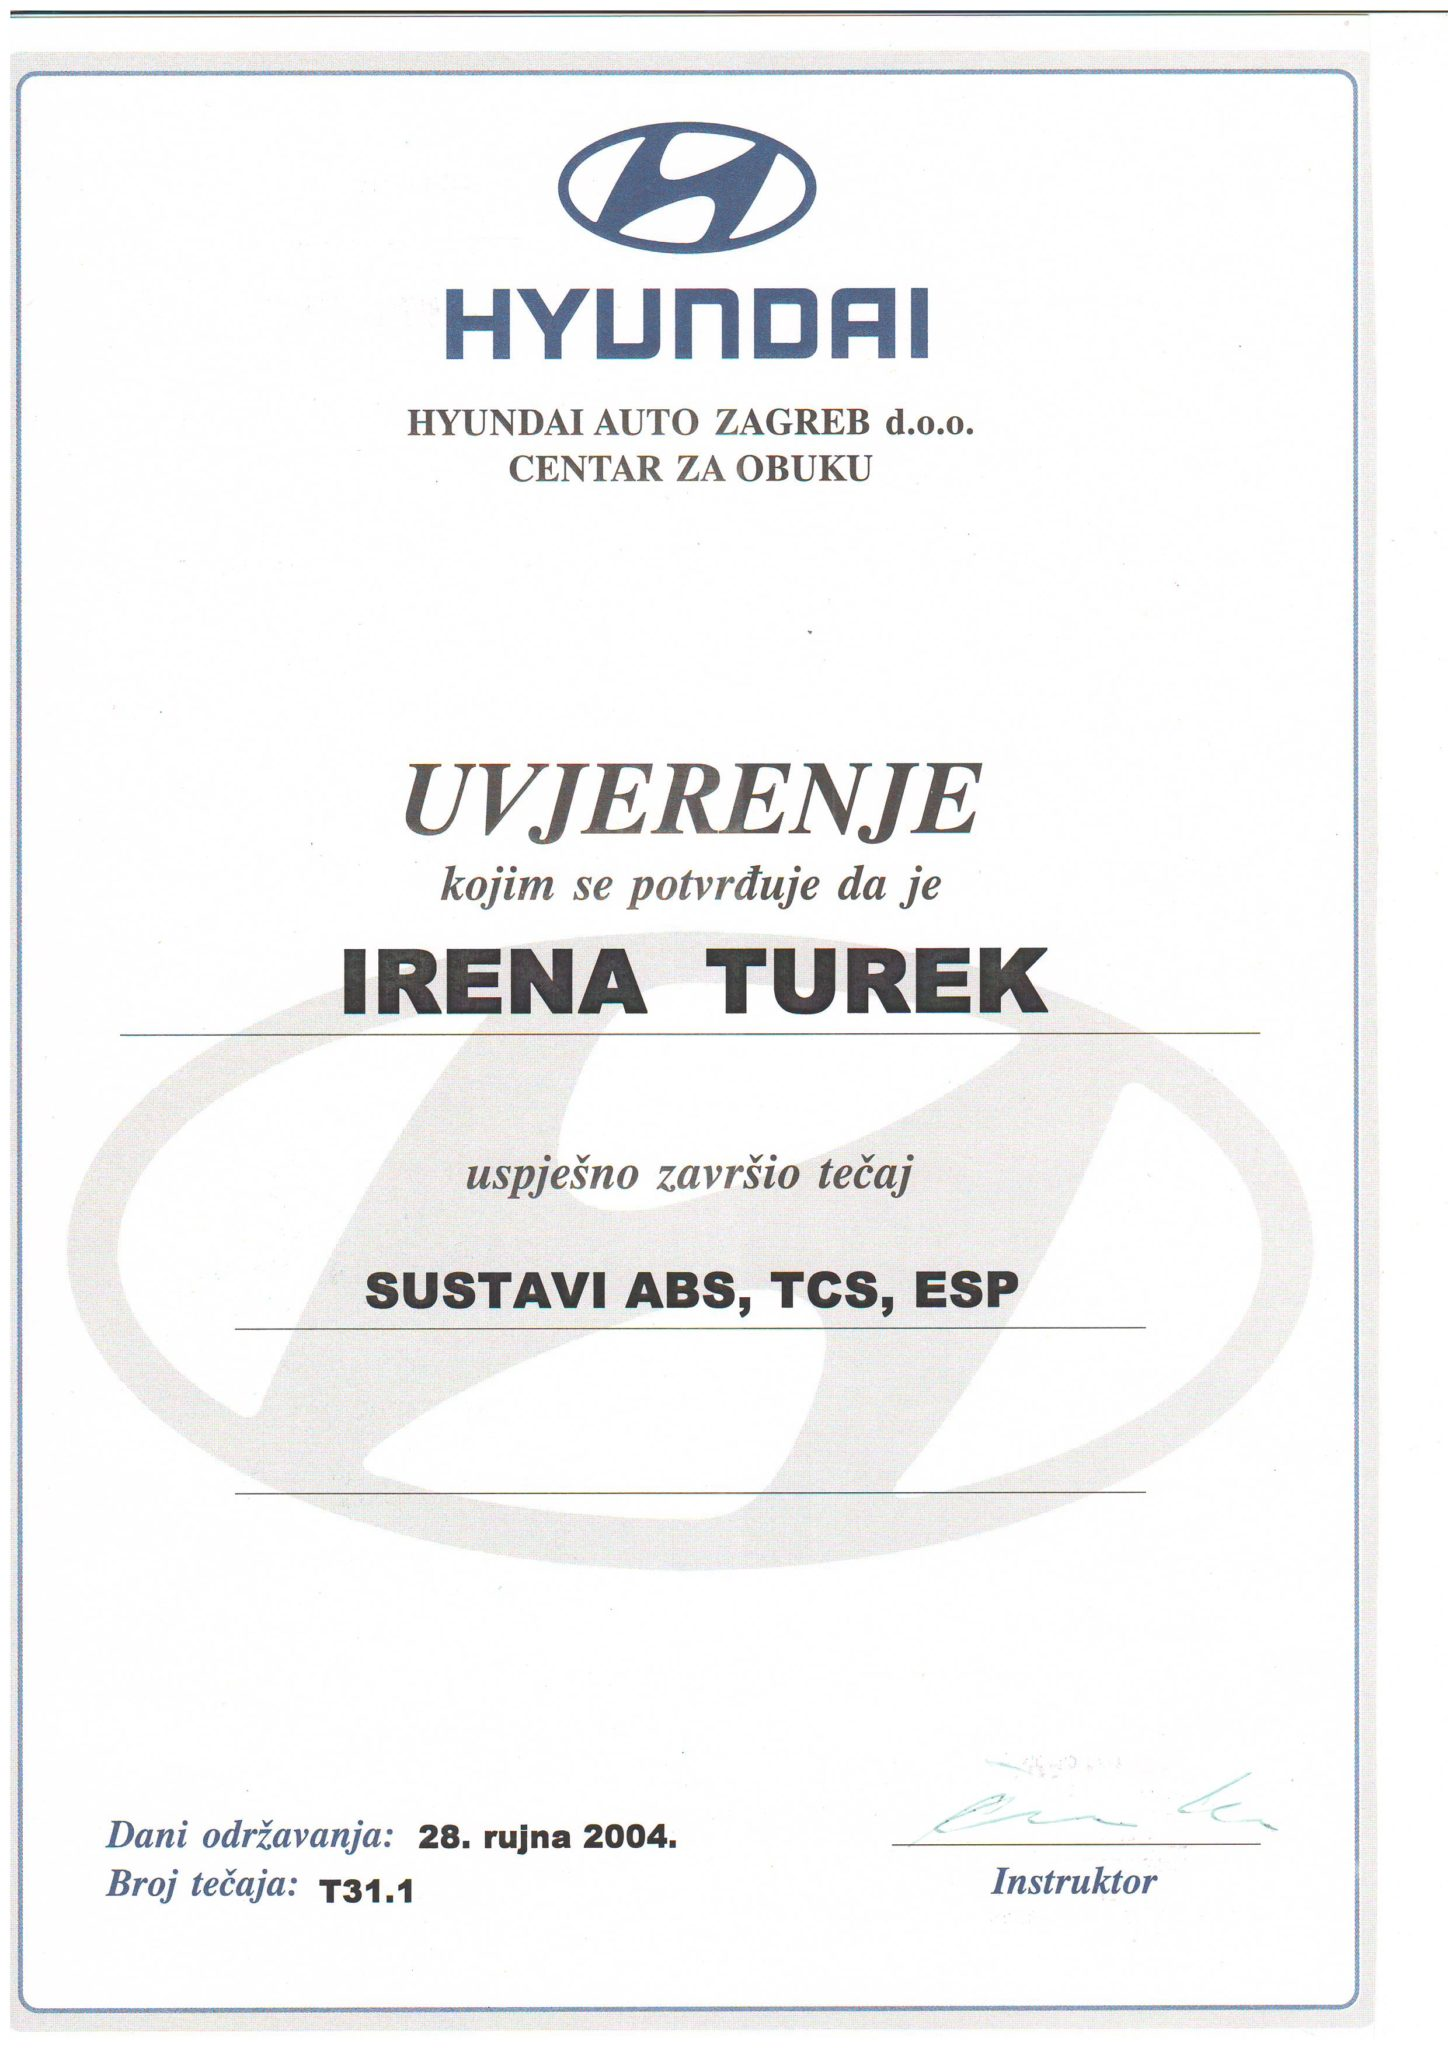 Picture of Hyundai - Sustavi ABS, TCS, ESP